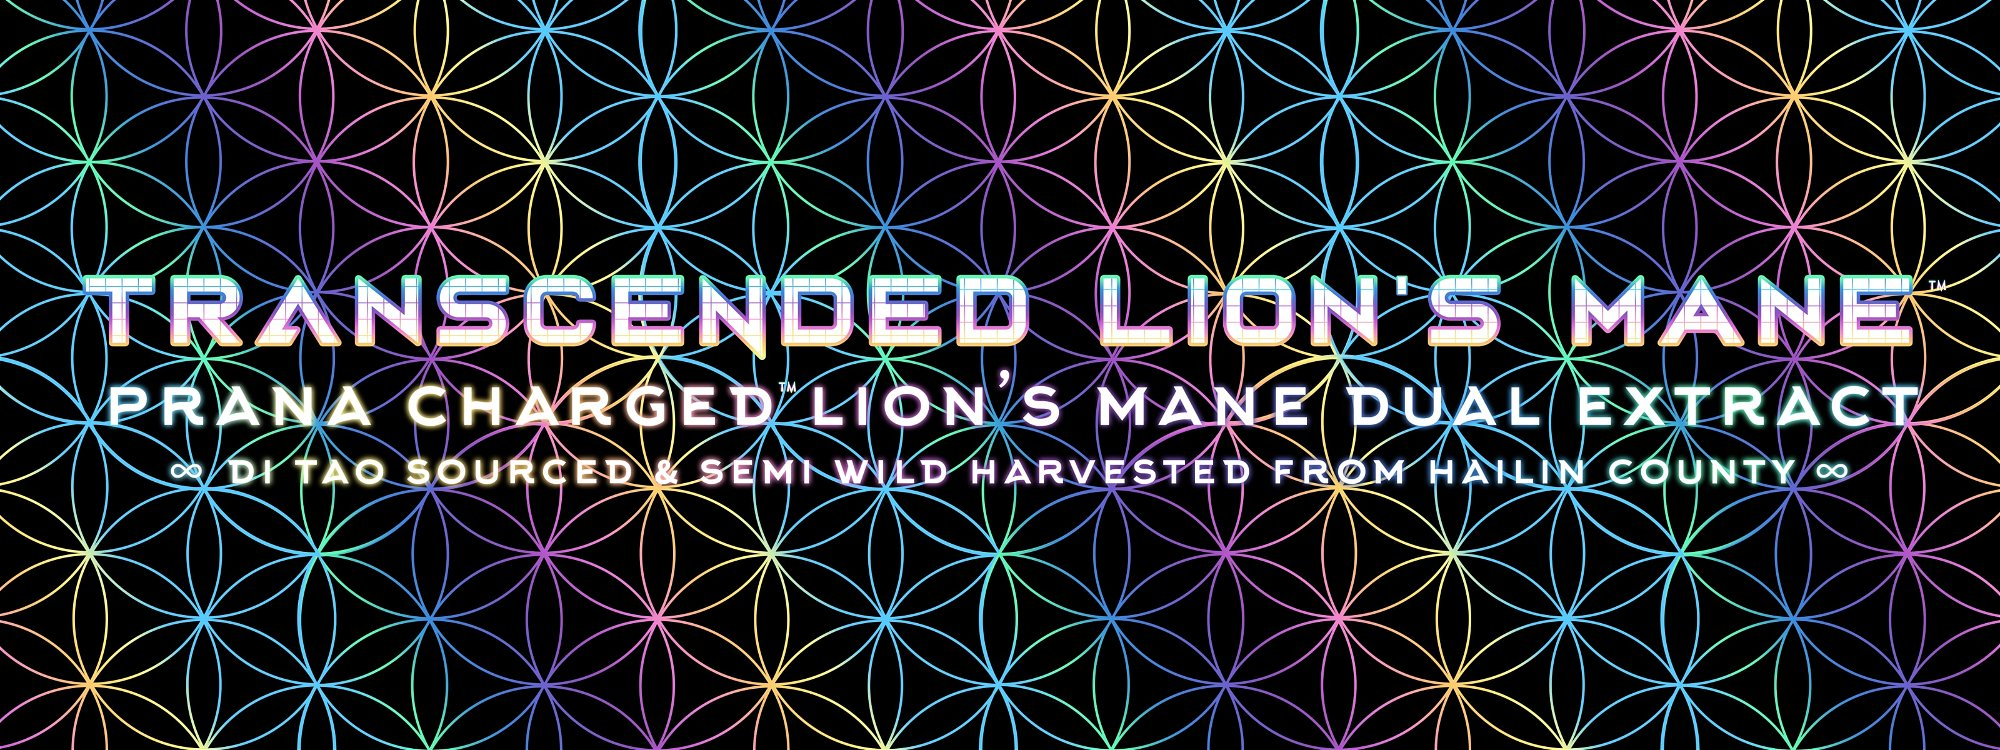 transcended lions mane di tao sourced dual extract powder